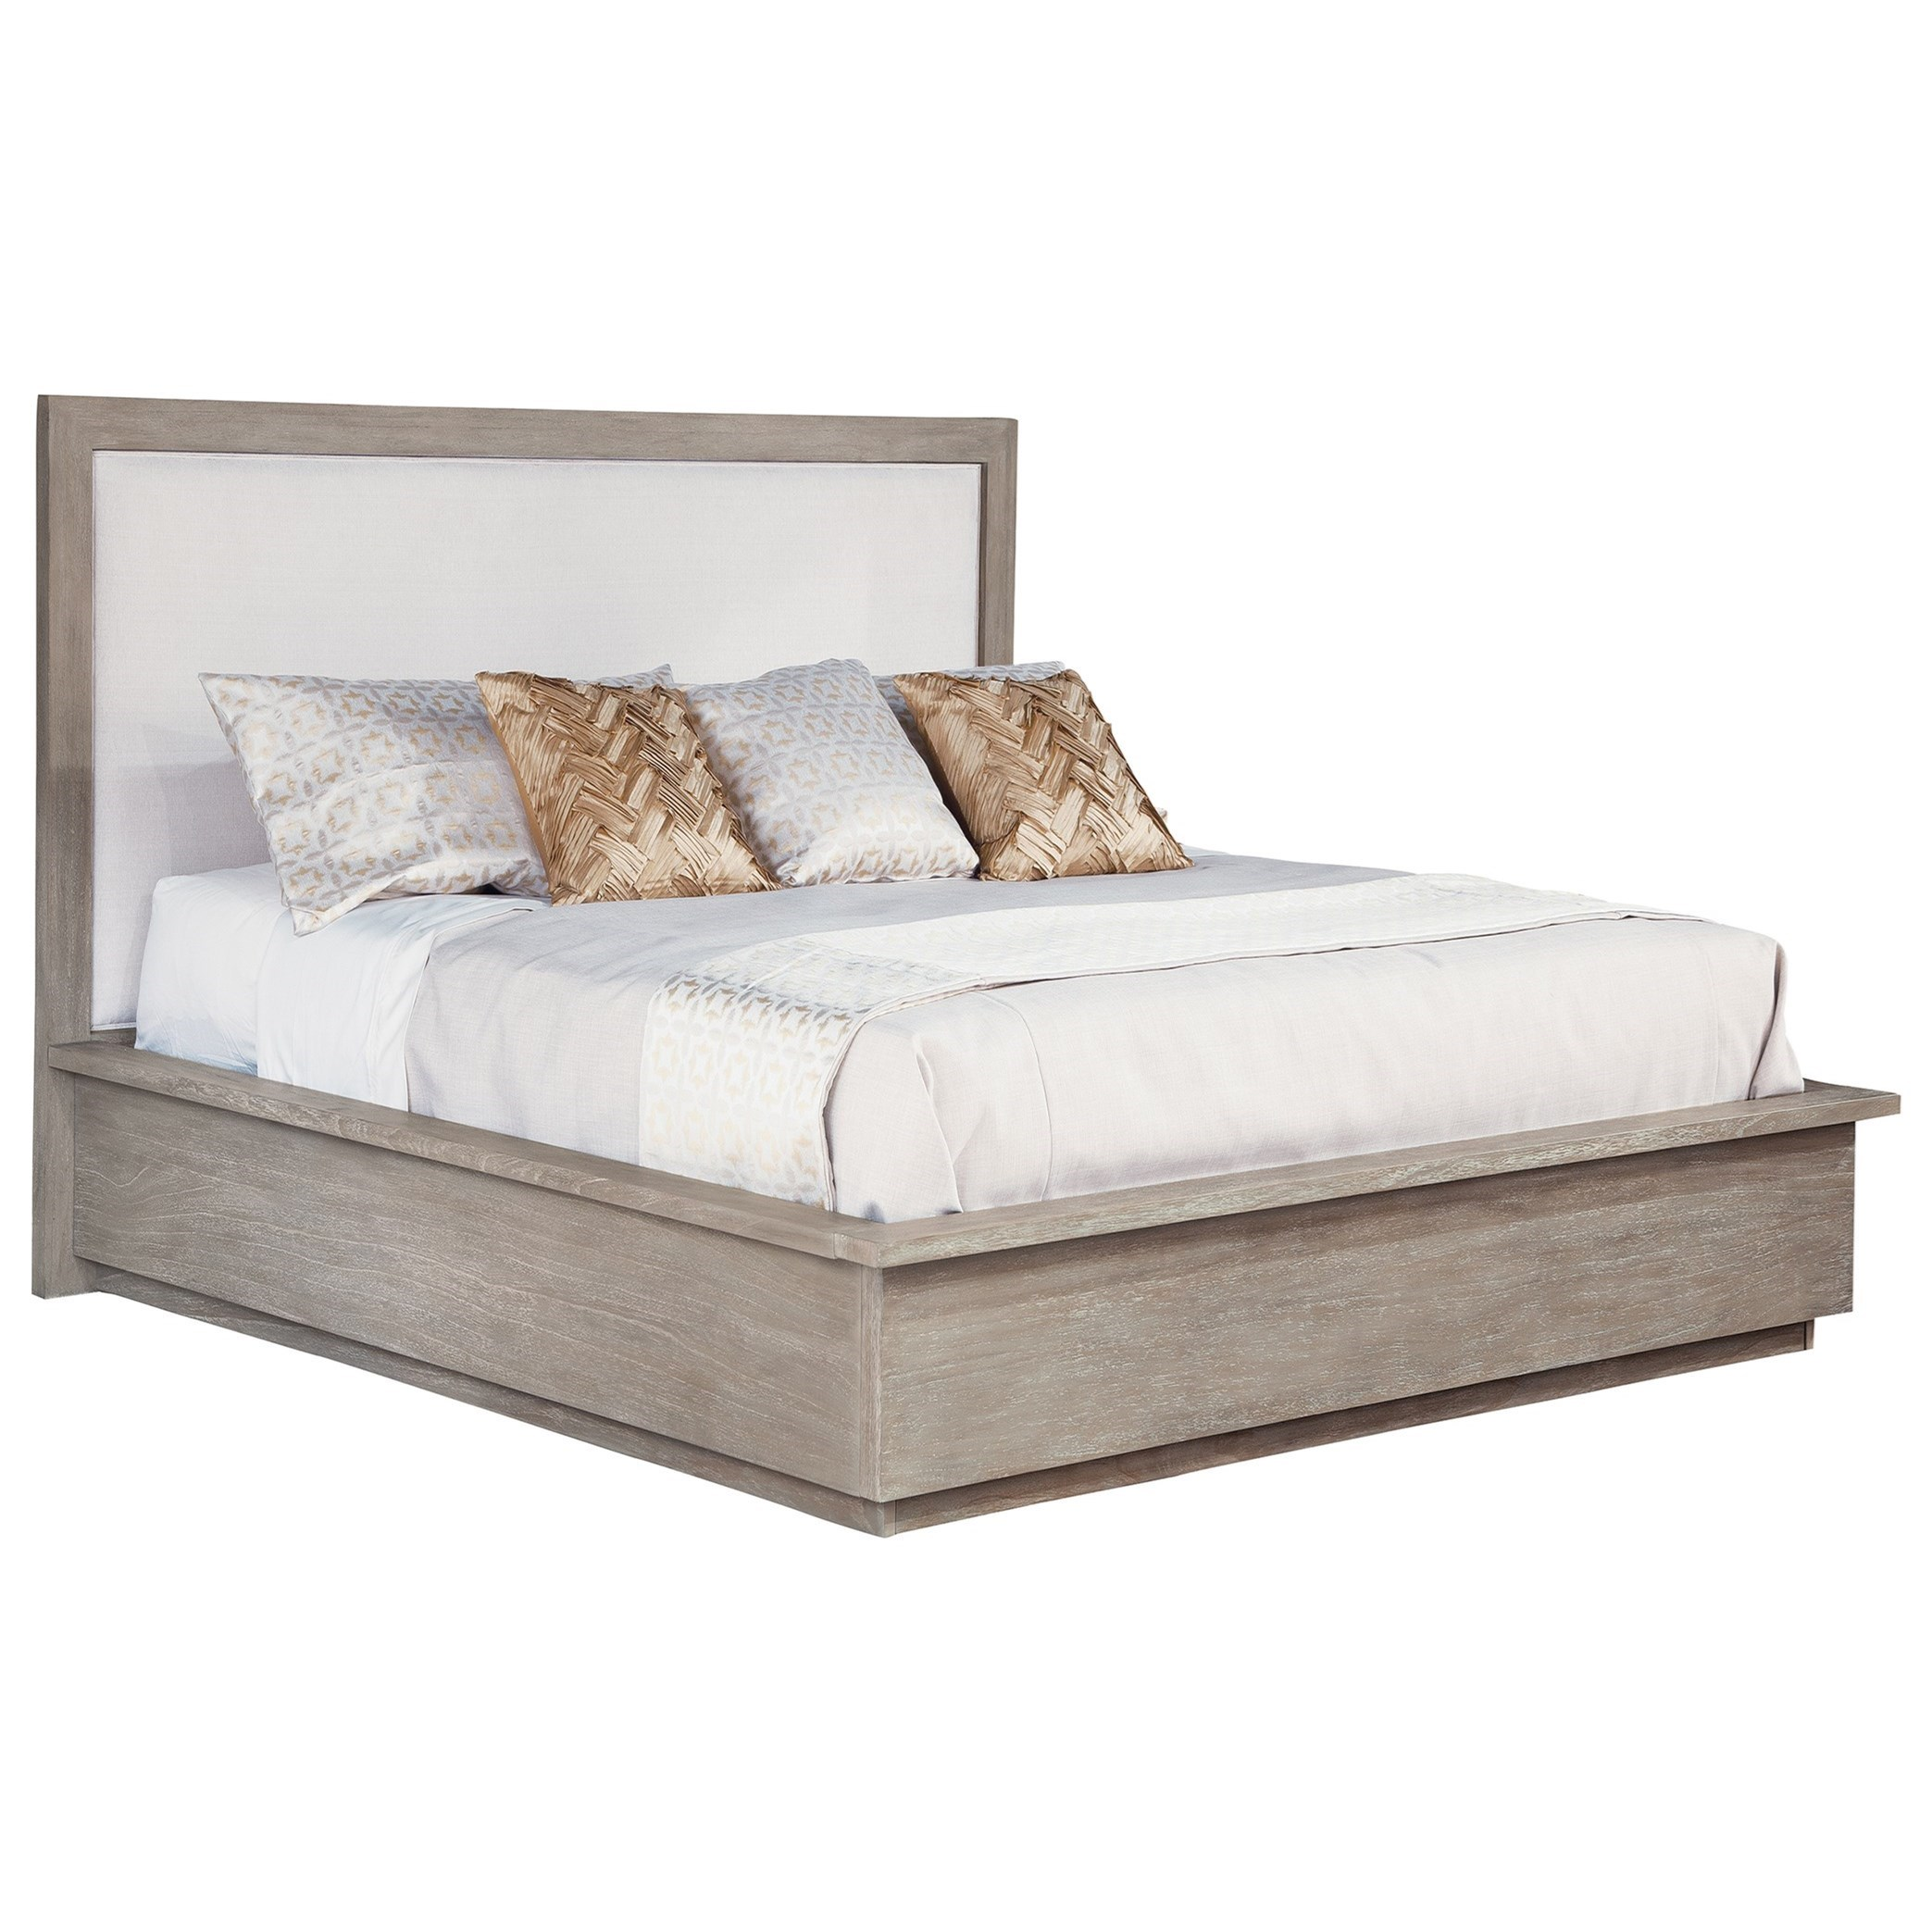 wing passy queen ivo white off bed heritage french m